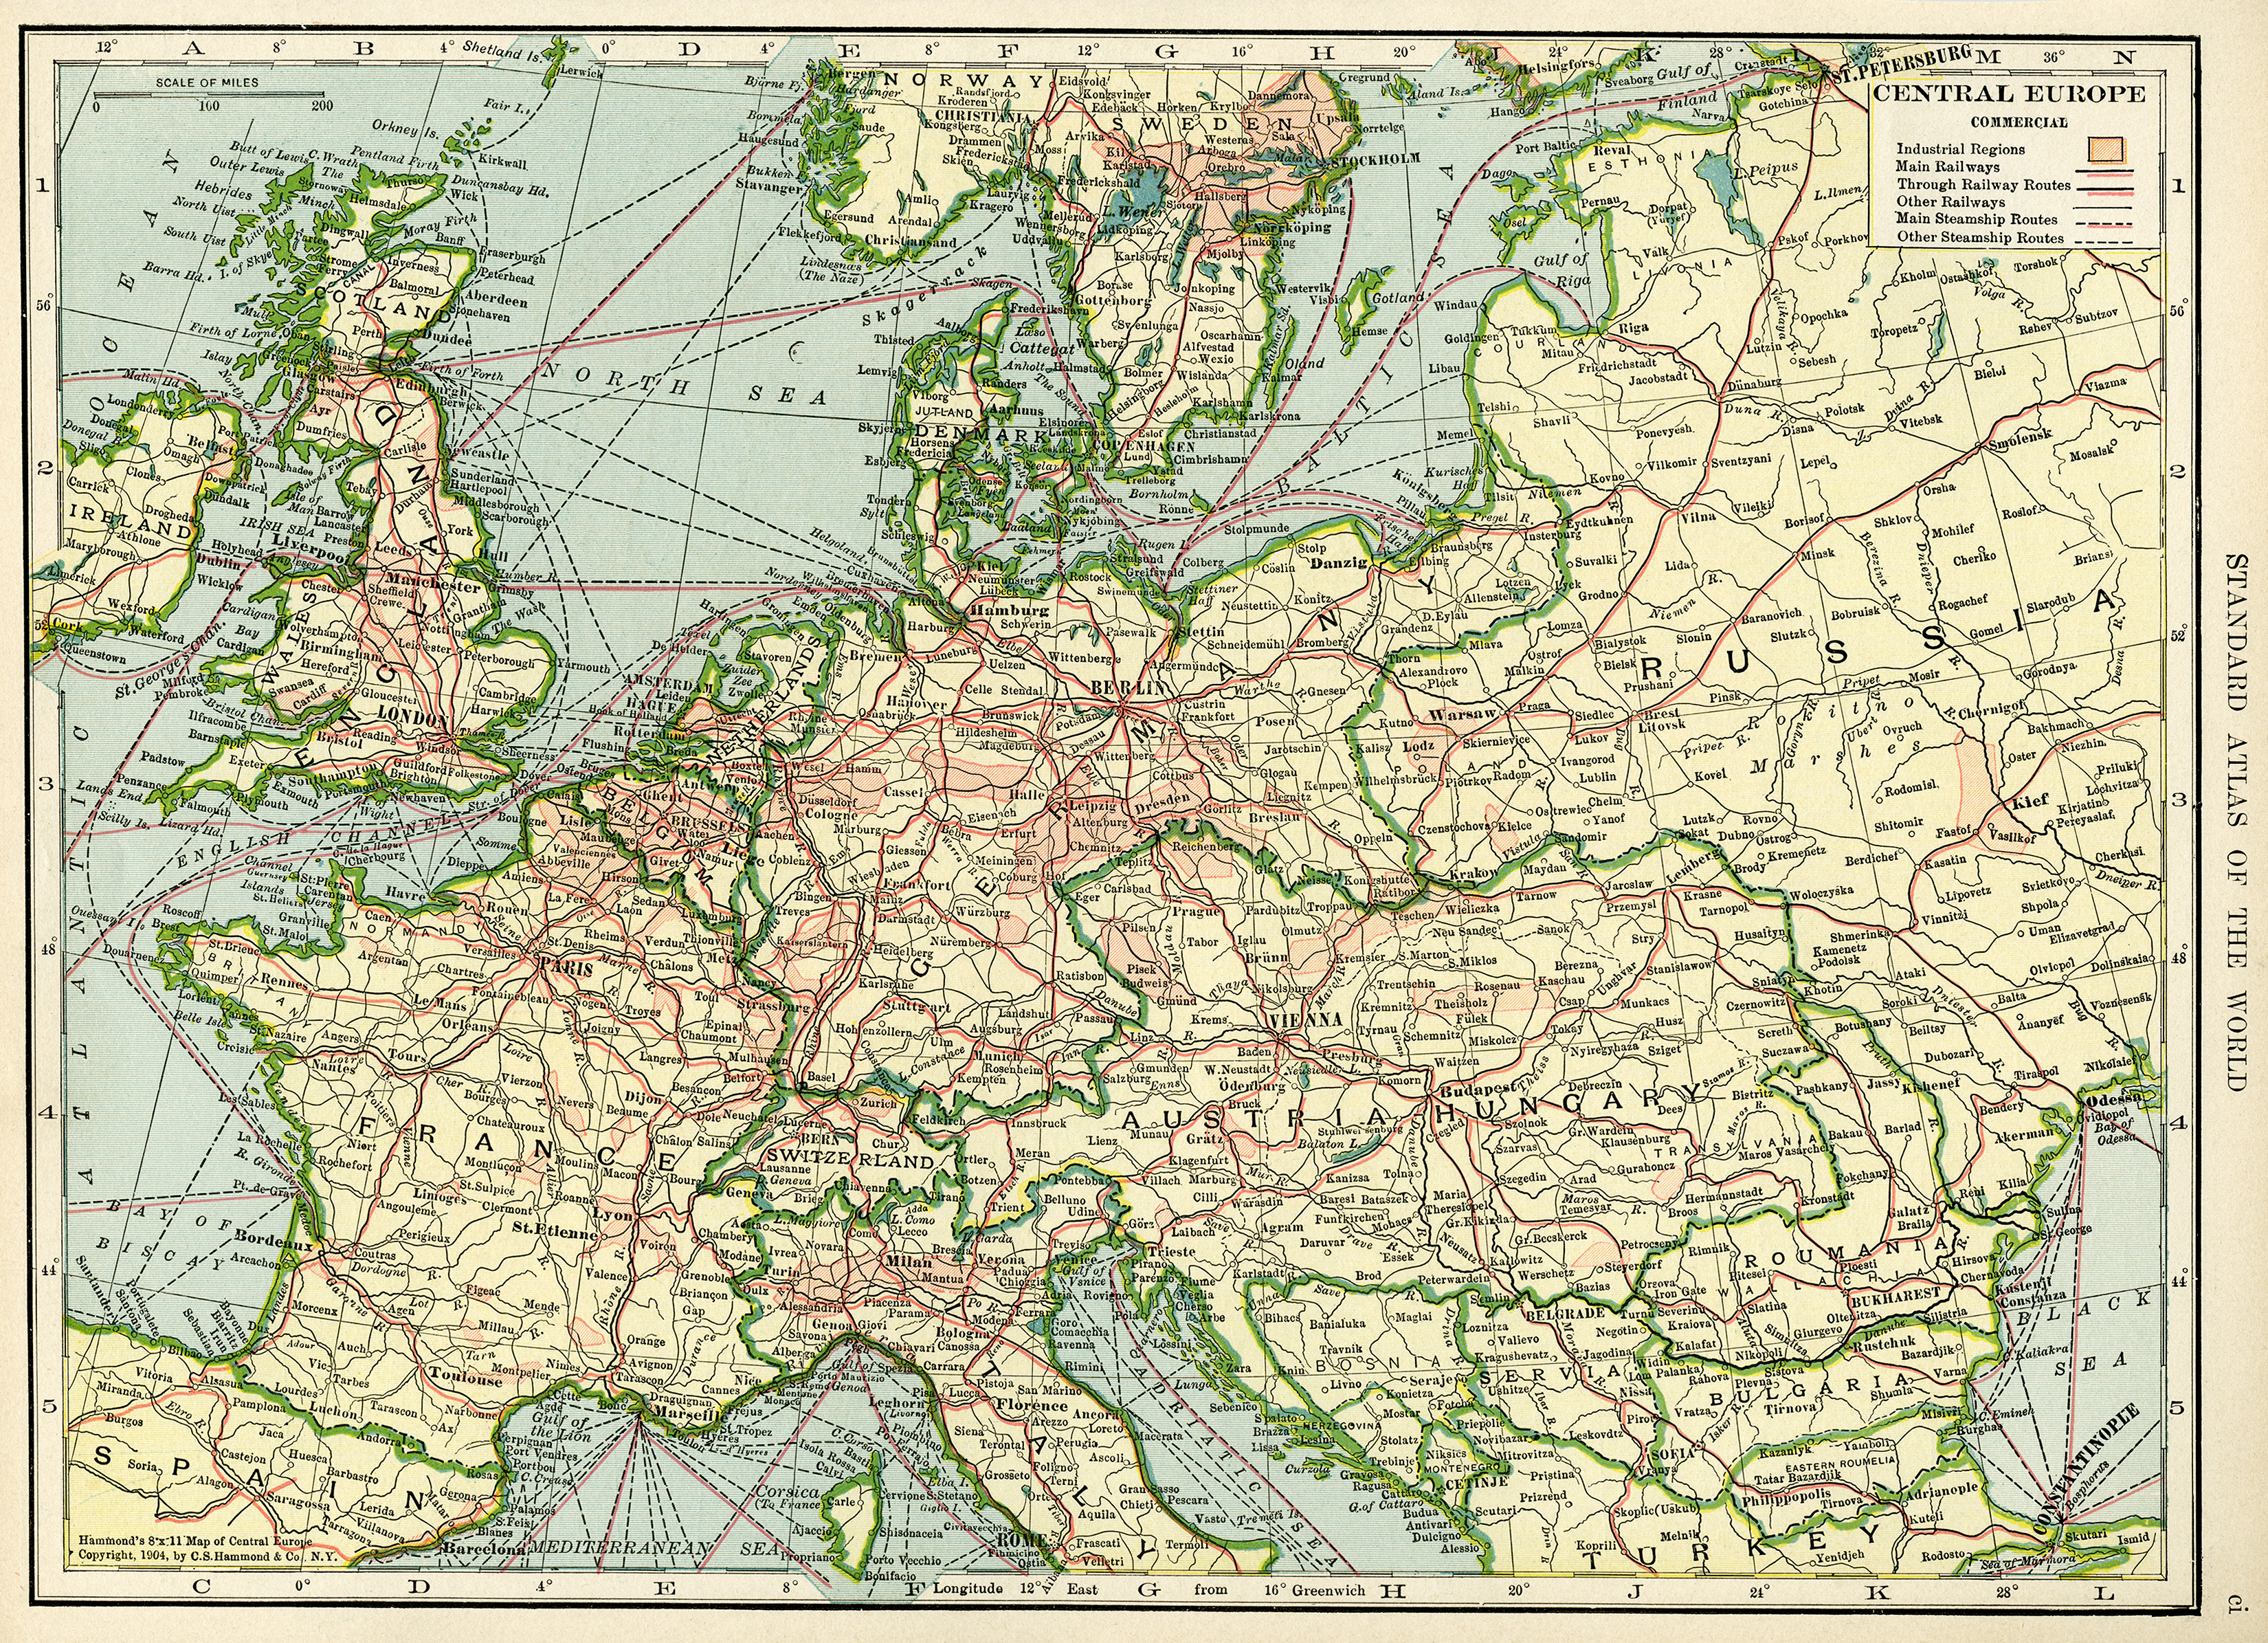 Central Europe Vintage Geography Map Free Digital Image